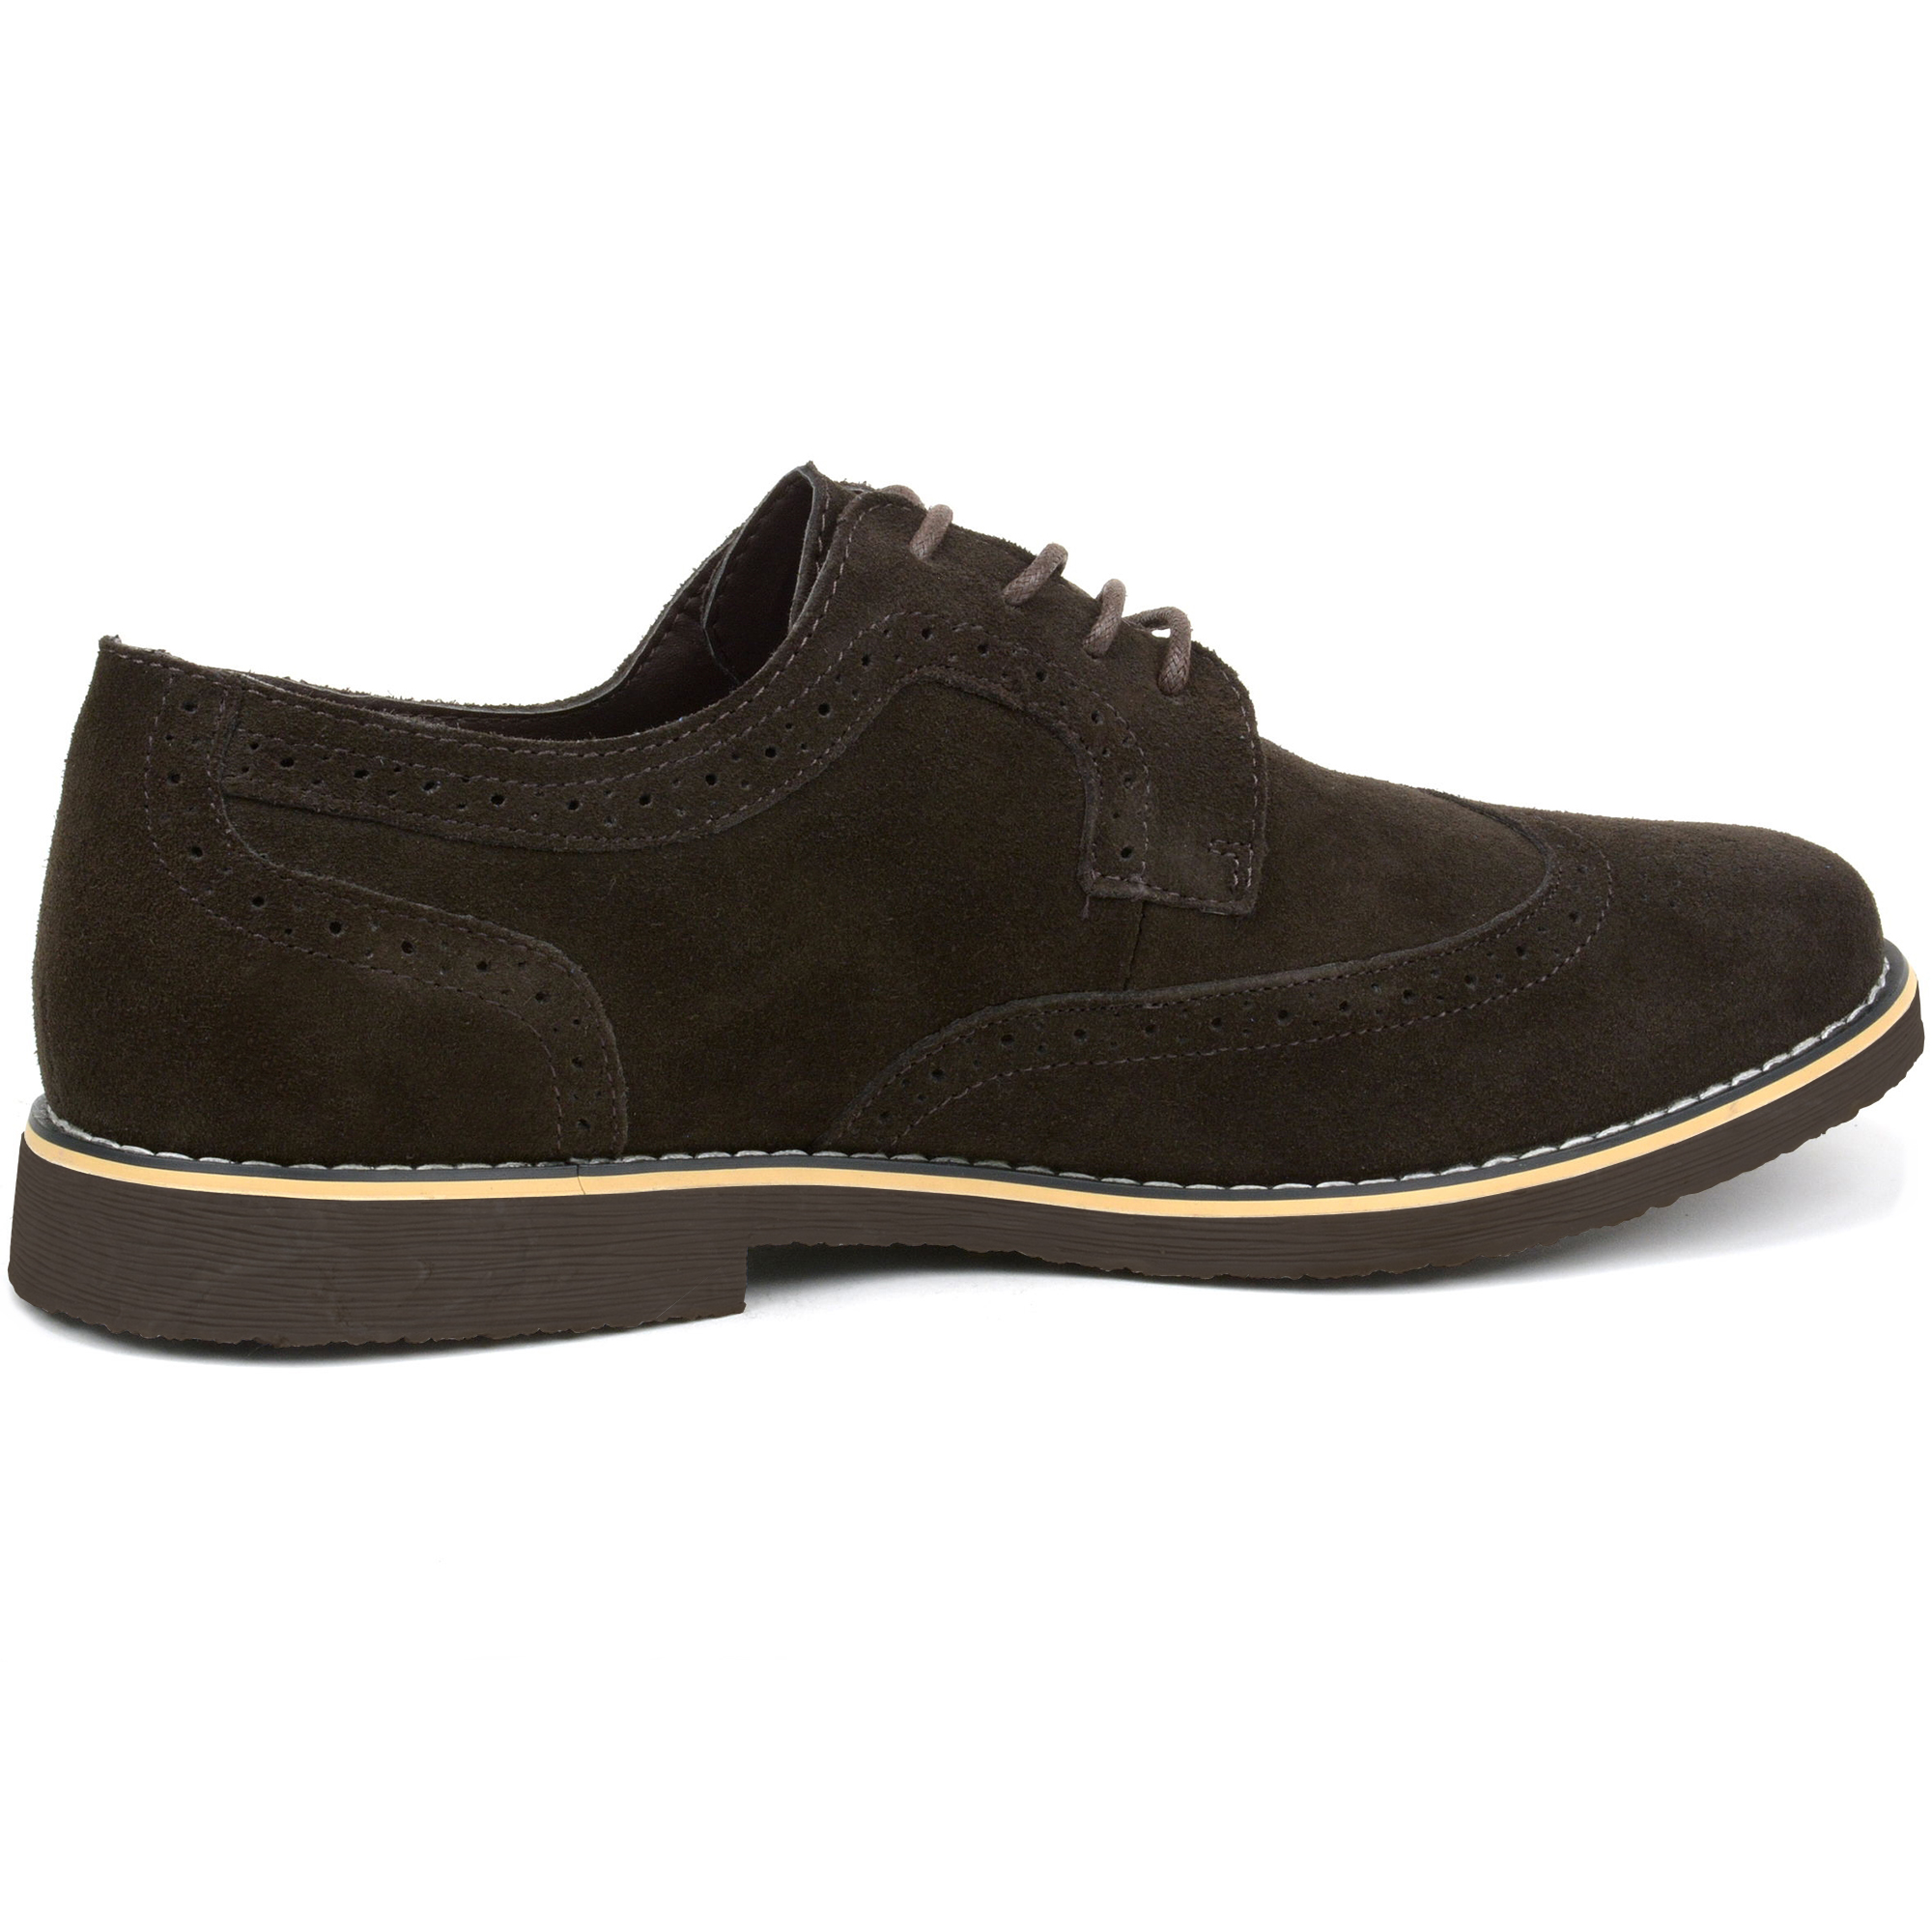 Alpine-Swiss-Beau-Mens-Dress-Shoes-Genuine-Suede-Wing-Tip-Brogue-Lace-Up-Oxfords thumbnail 37